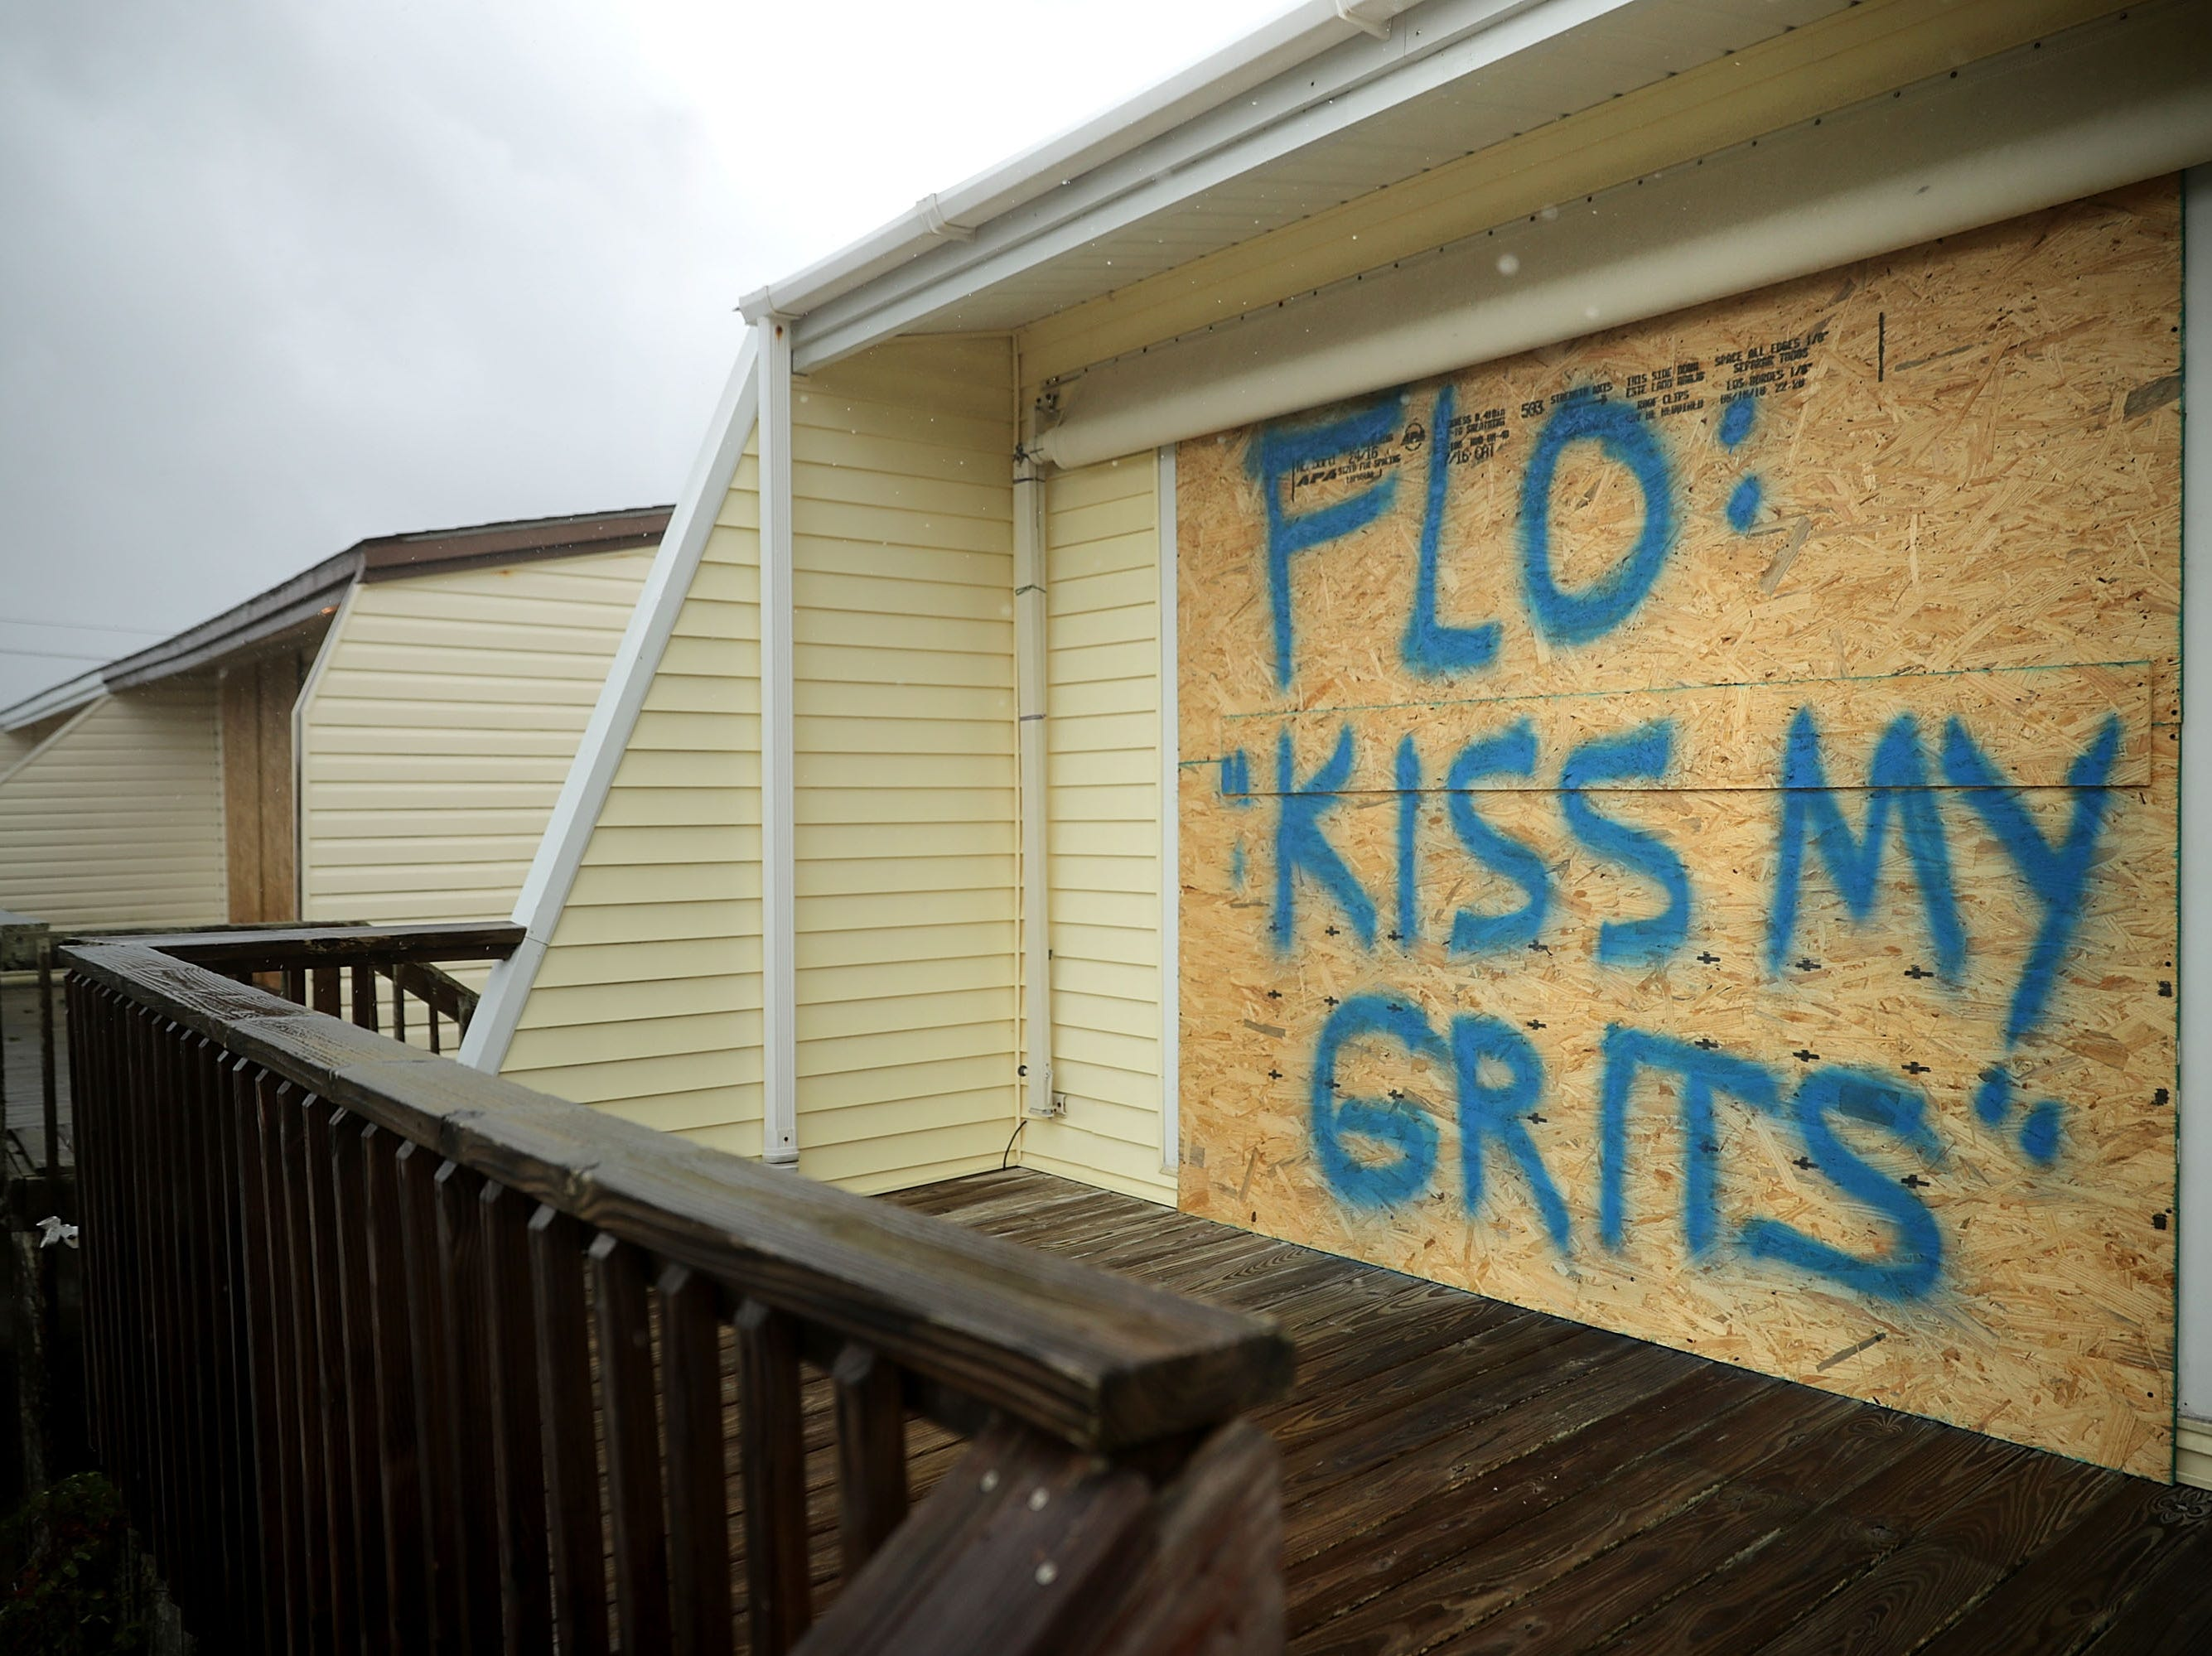 A spray painted message is left on a boarded up condominium as the outer bands of Hurricane Florence being to affect the coast Sept. 13, 2018 in Atlantic Beach, United States. Coastal cities in North Carolina, South Carolina and Virginia are under evacuation orders as the Category 2 hurricane approaches the United States.